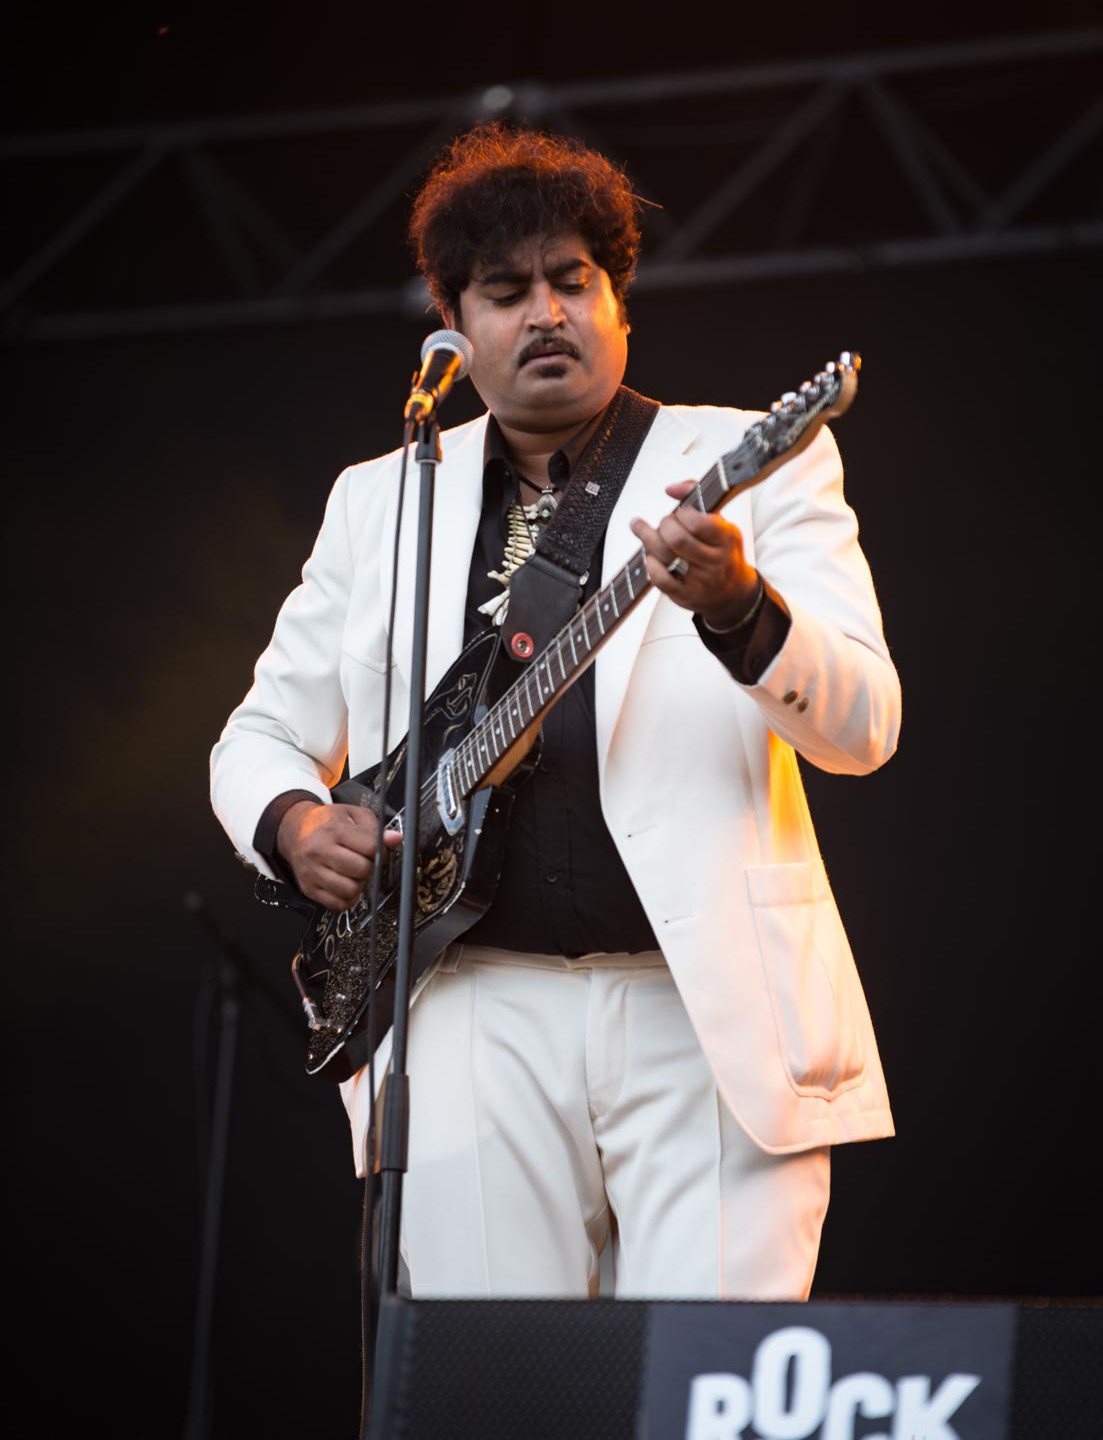 The Berlin-based garage rock and psychedelic soul band King Khan & the Shrines, live at Rock en Seine festival, Paris, France, August 2017.  On assignment for ZYVA Magazine All rights reserved.